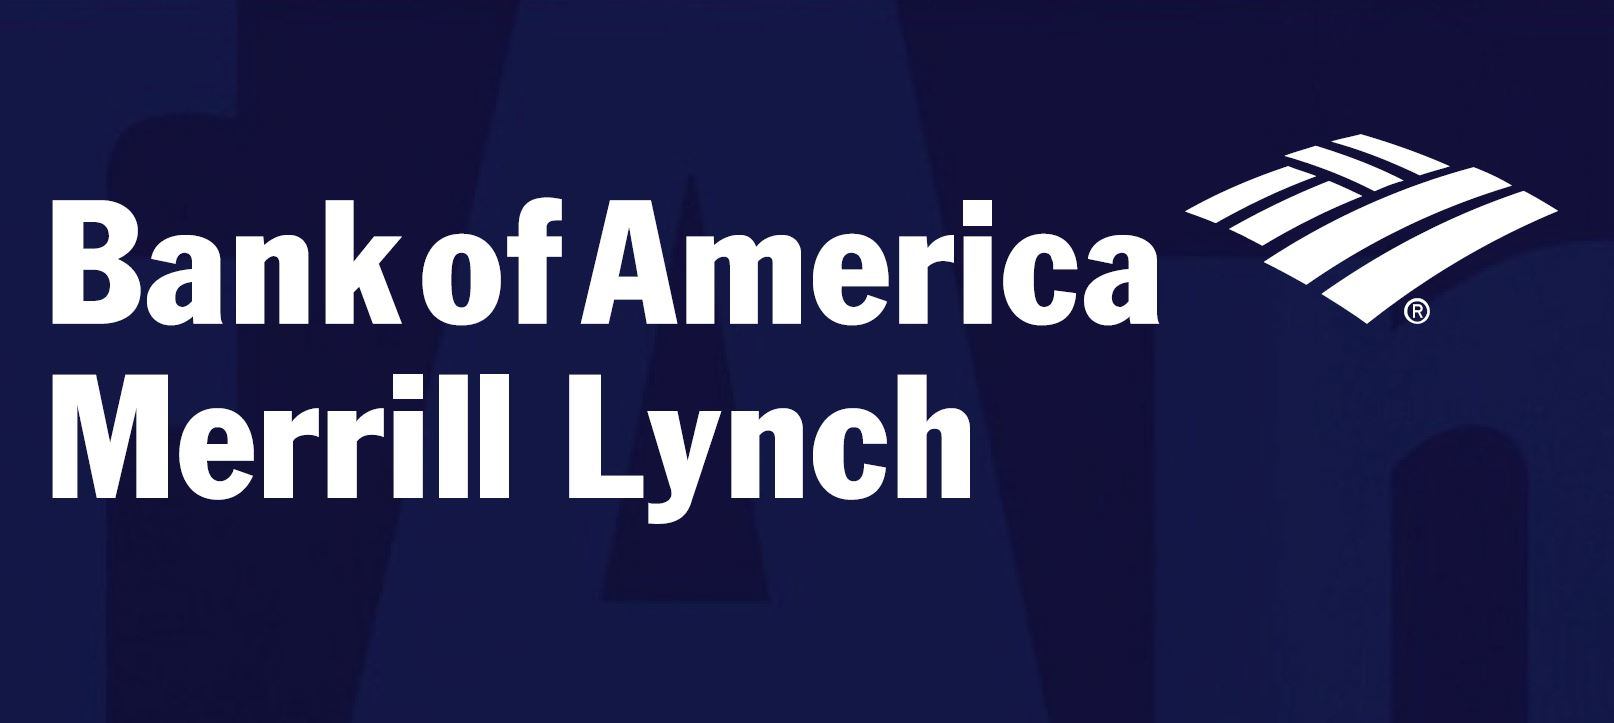 merill lynch Join the bank of america merrill lynch team and make an impact by connecting our customers and clients to the financial solutions they need.